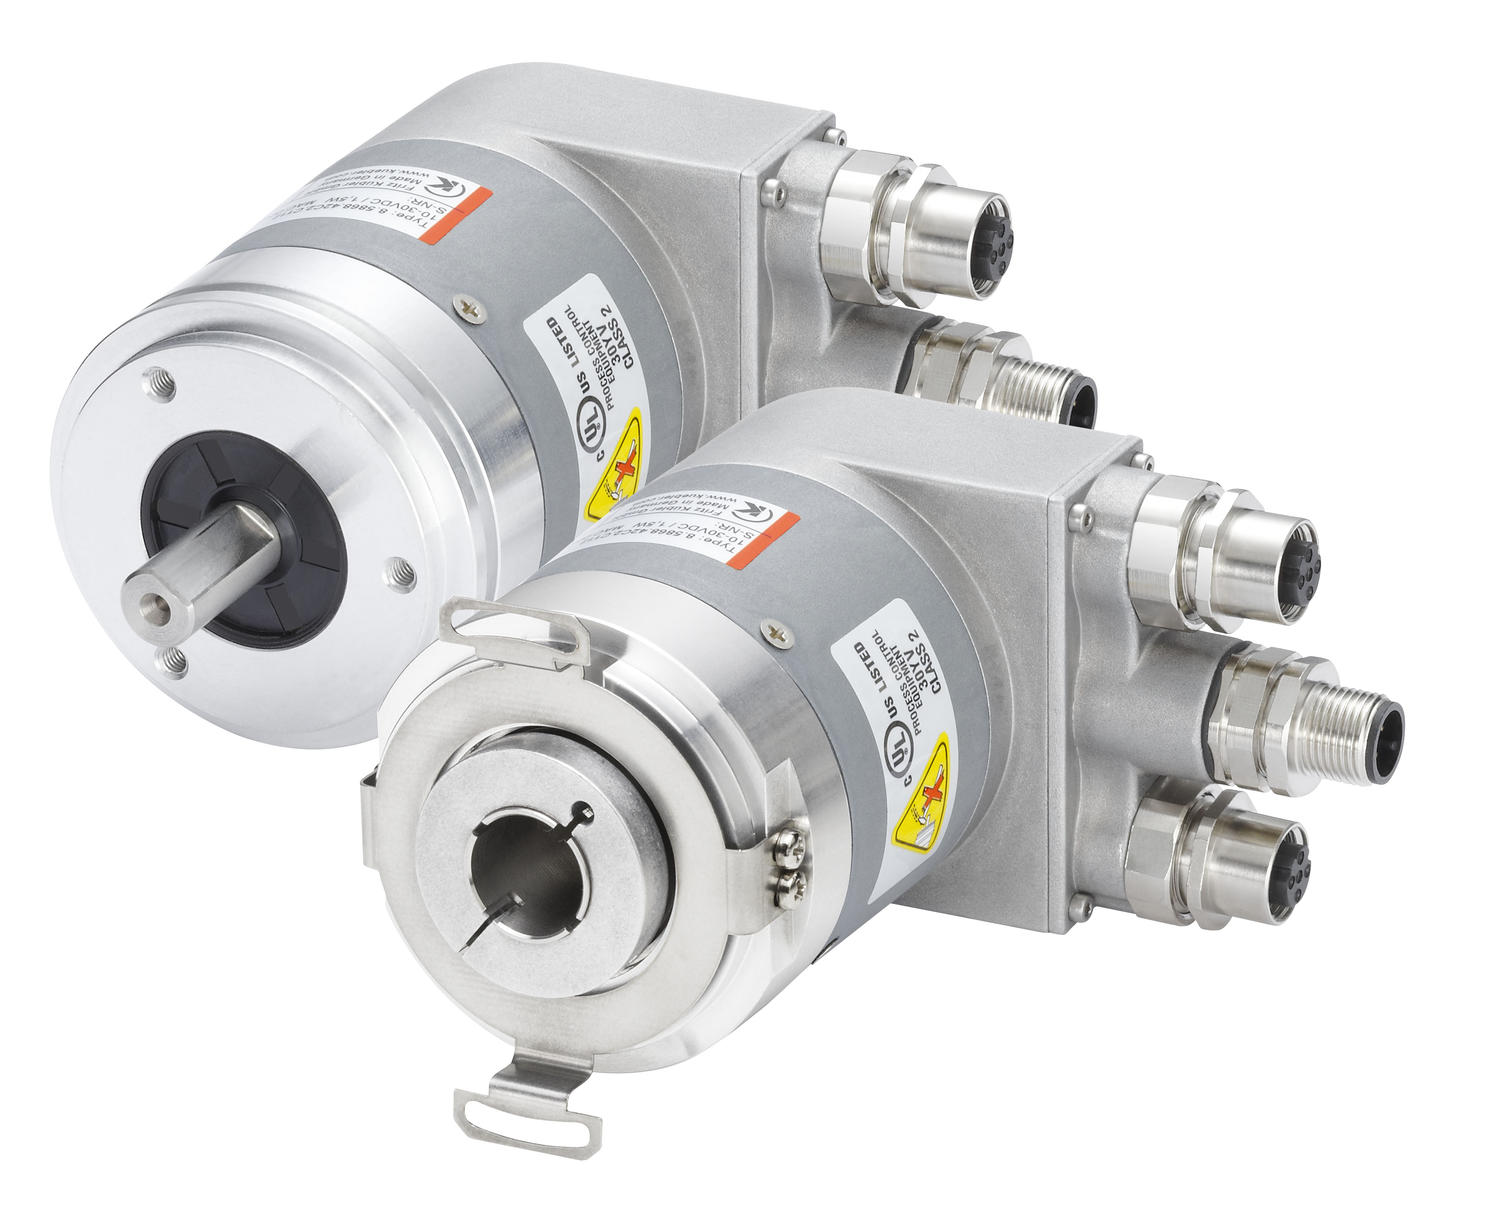 Absolutkodad vinkelgivare Sendix 5858/5878, optisk, ProfiNet, Ø58 mm